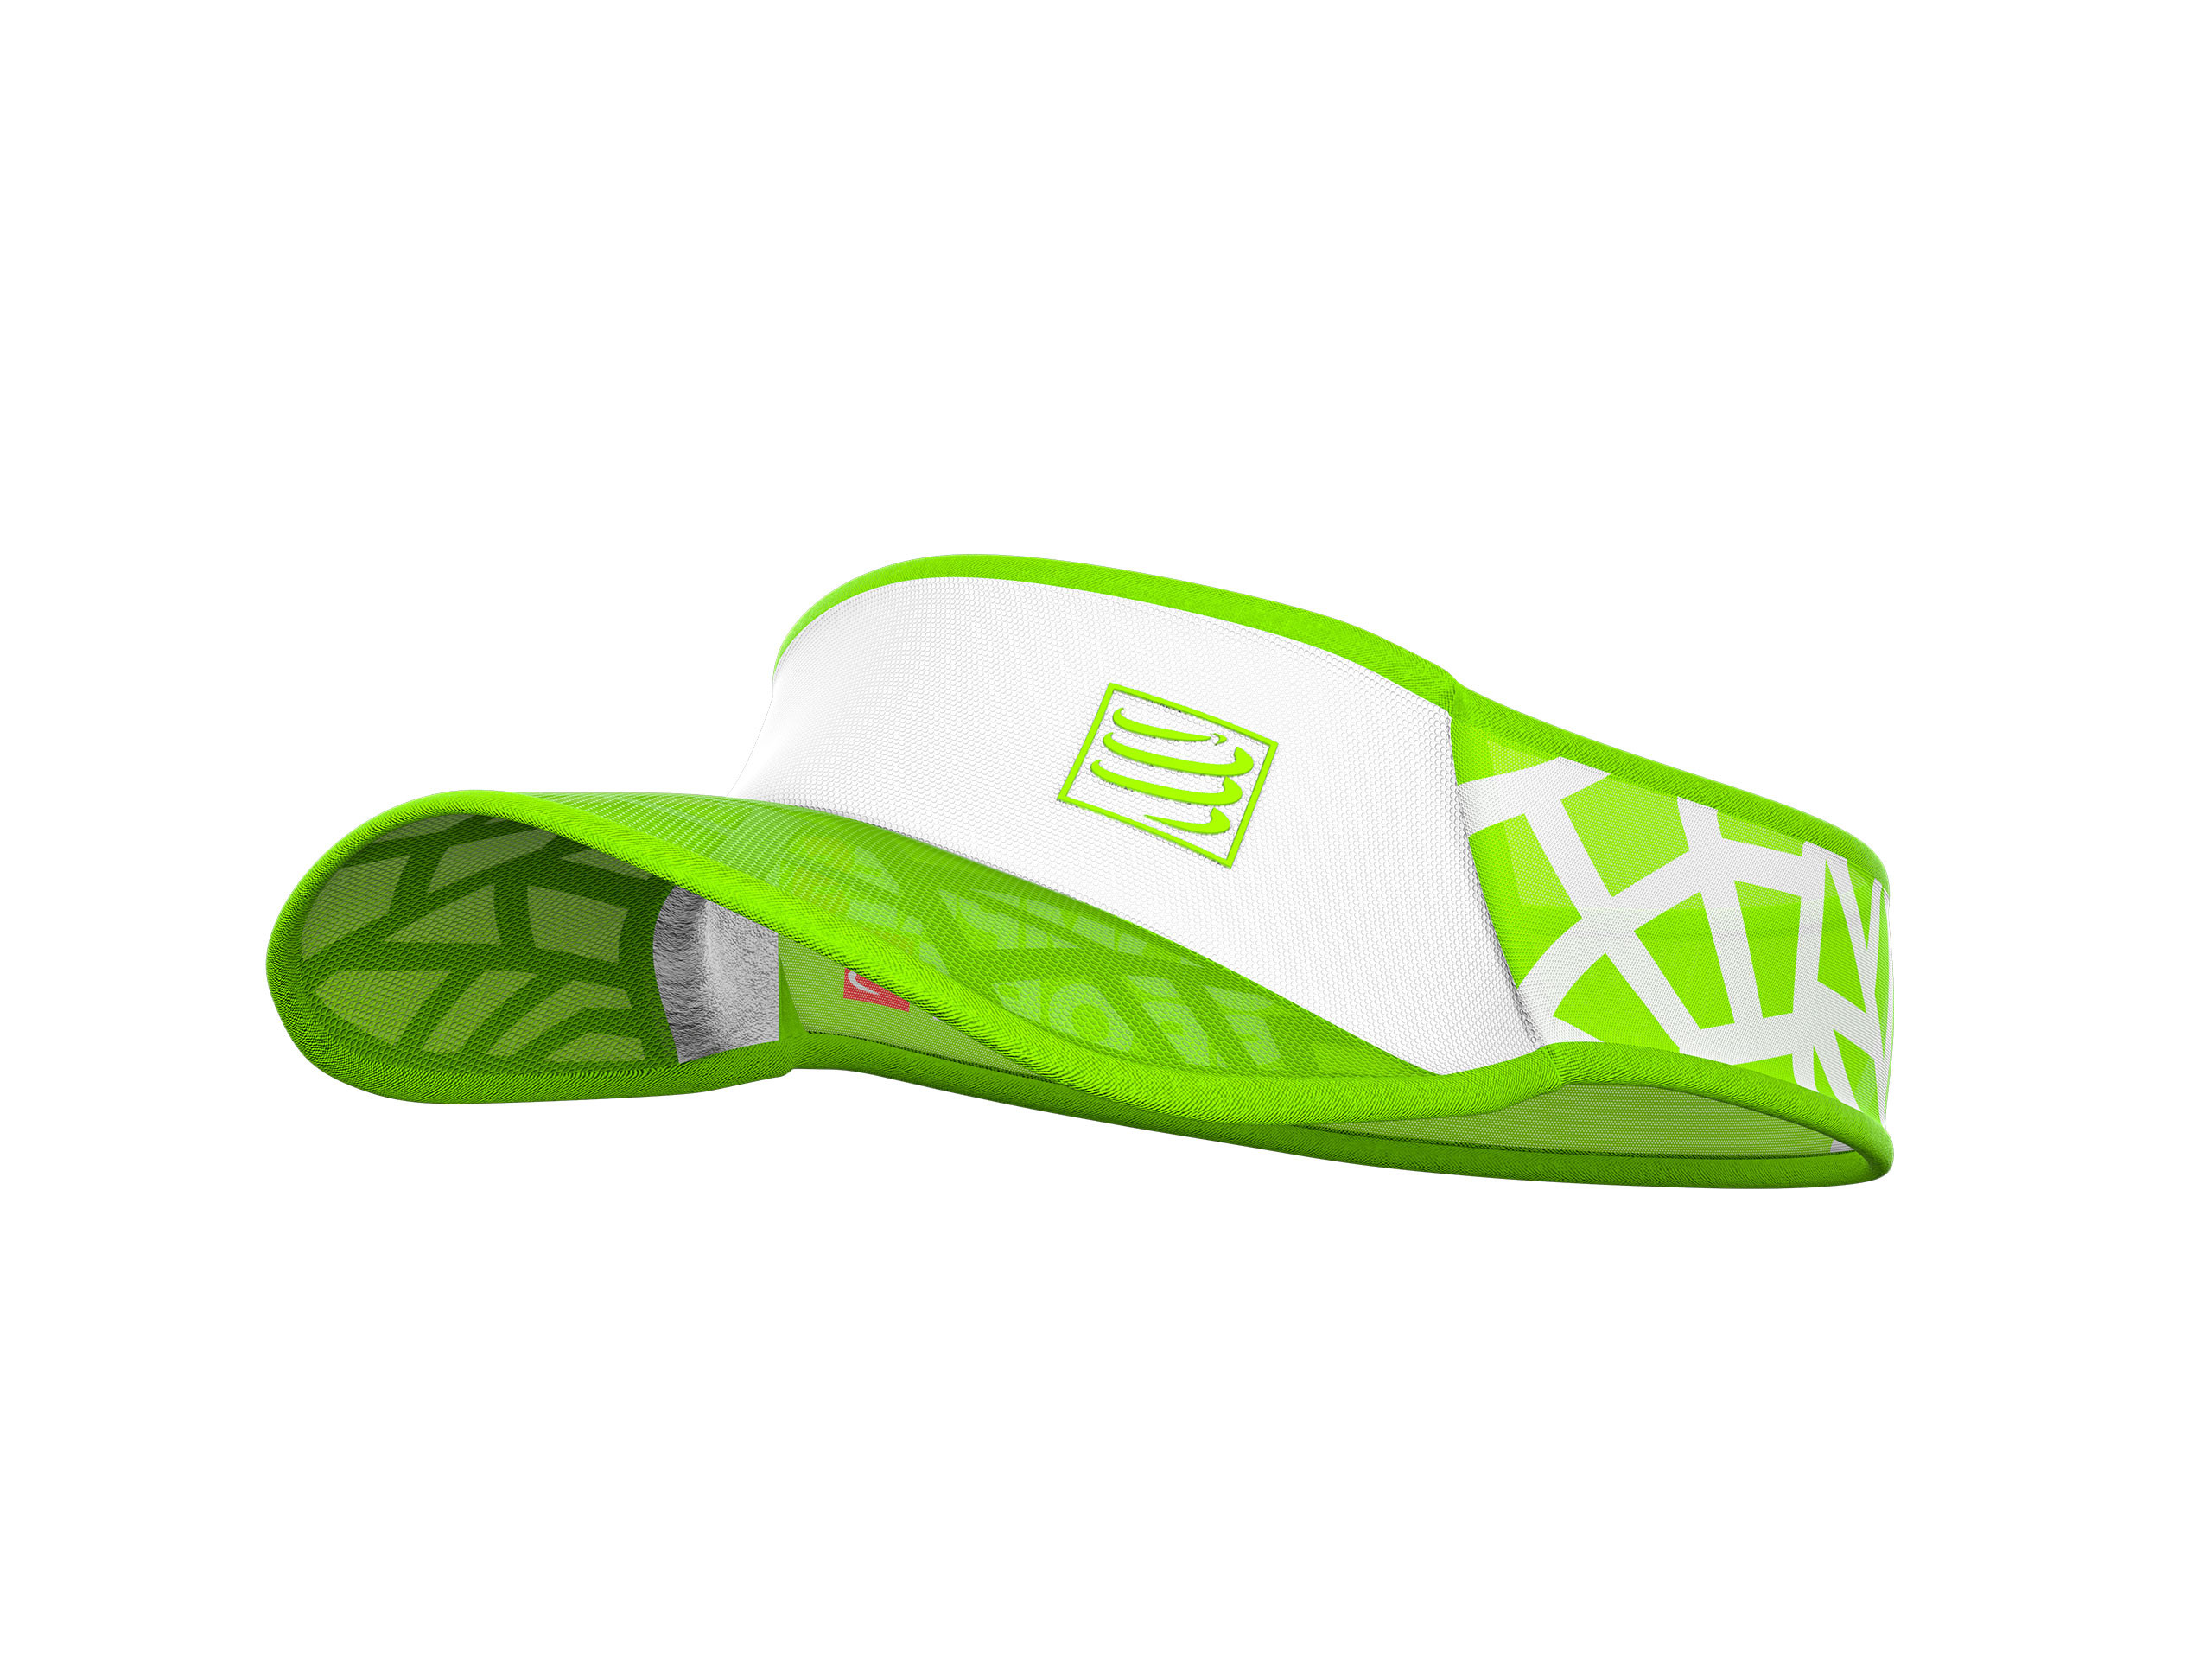 Visera Spiderweb Ultralight blanco/verde